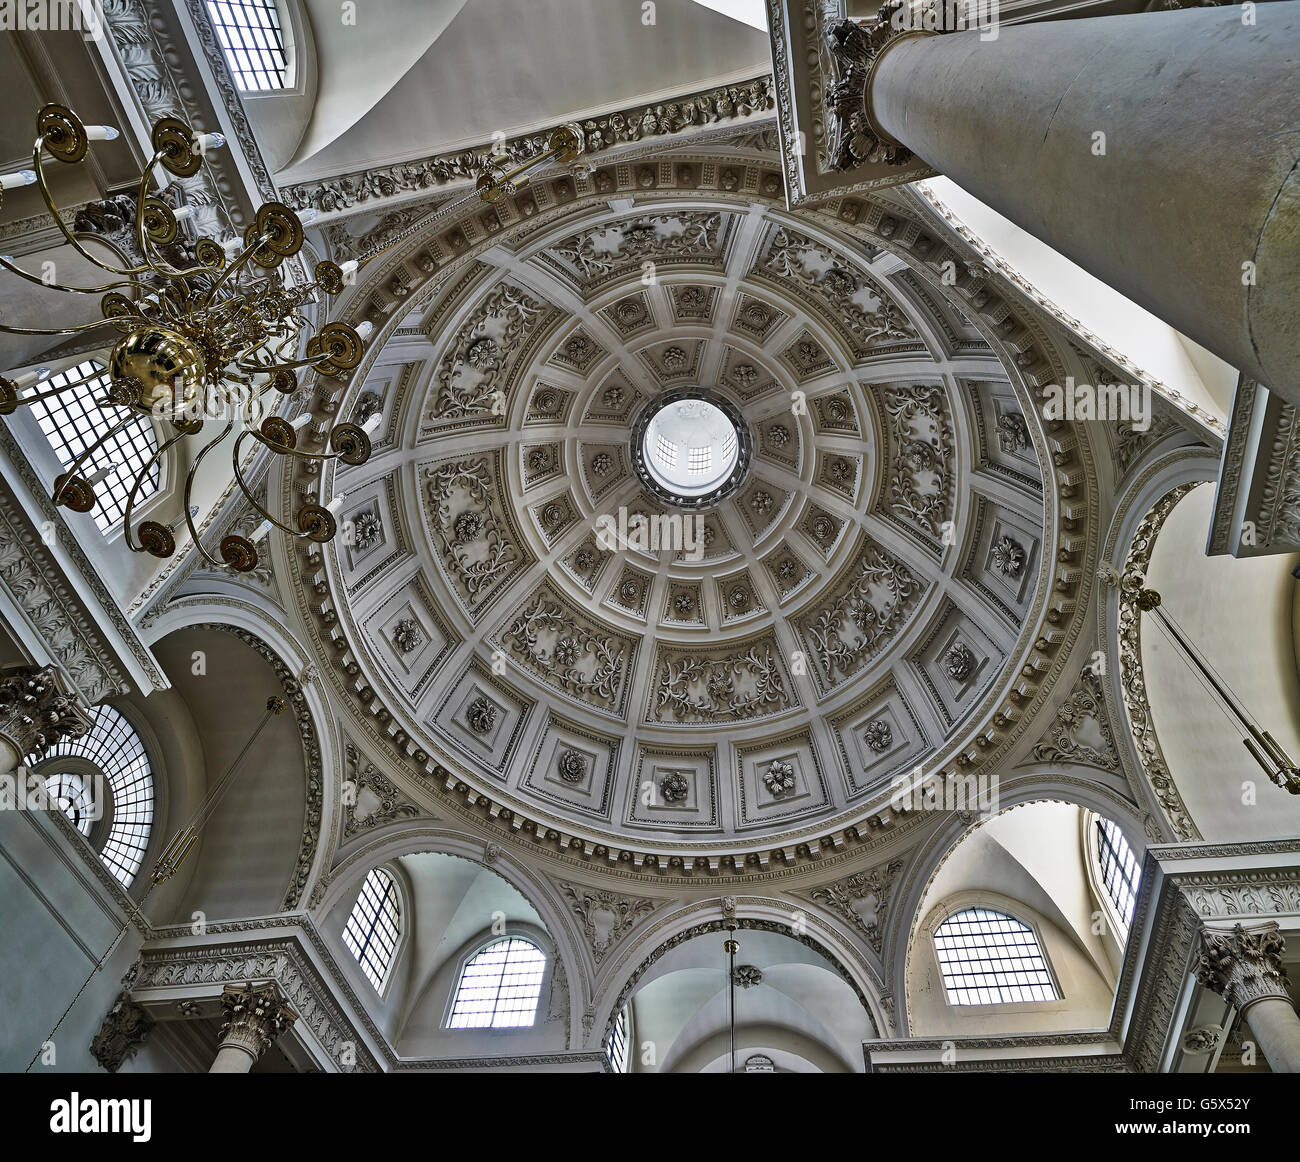 St Stephen Walbrook, church in the City of London; dome interior - Stock Image